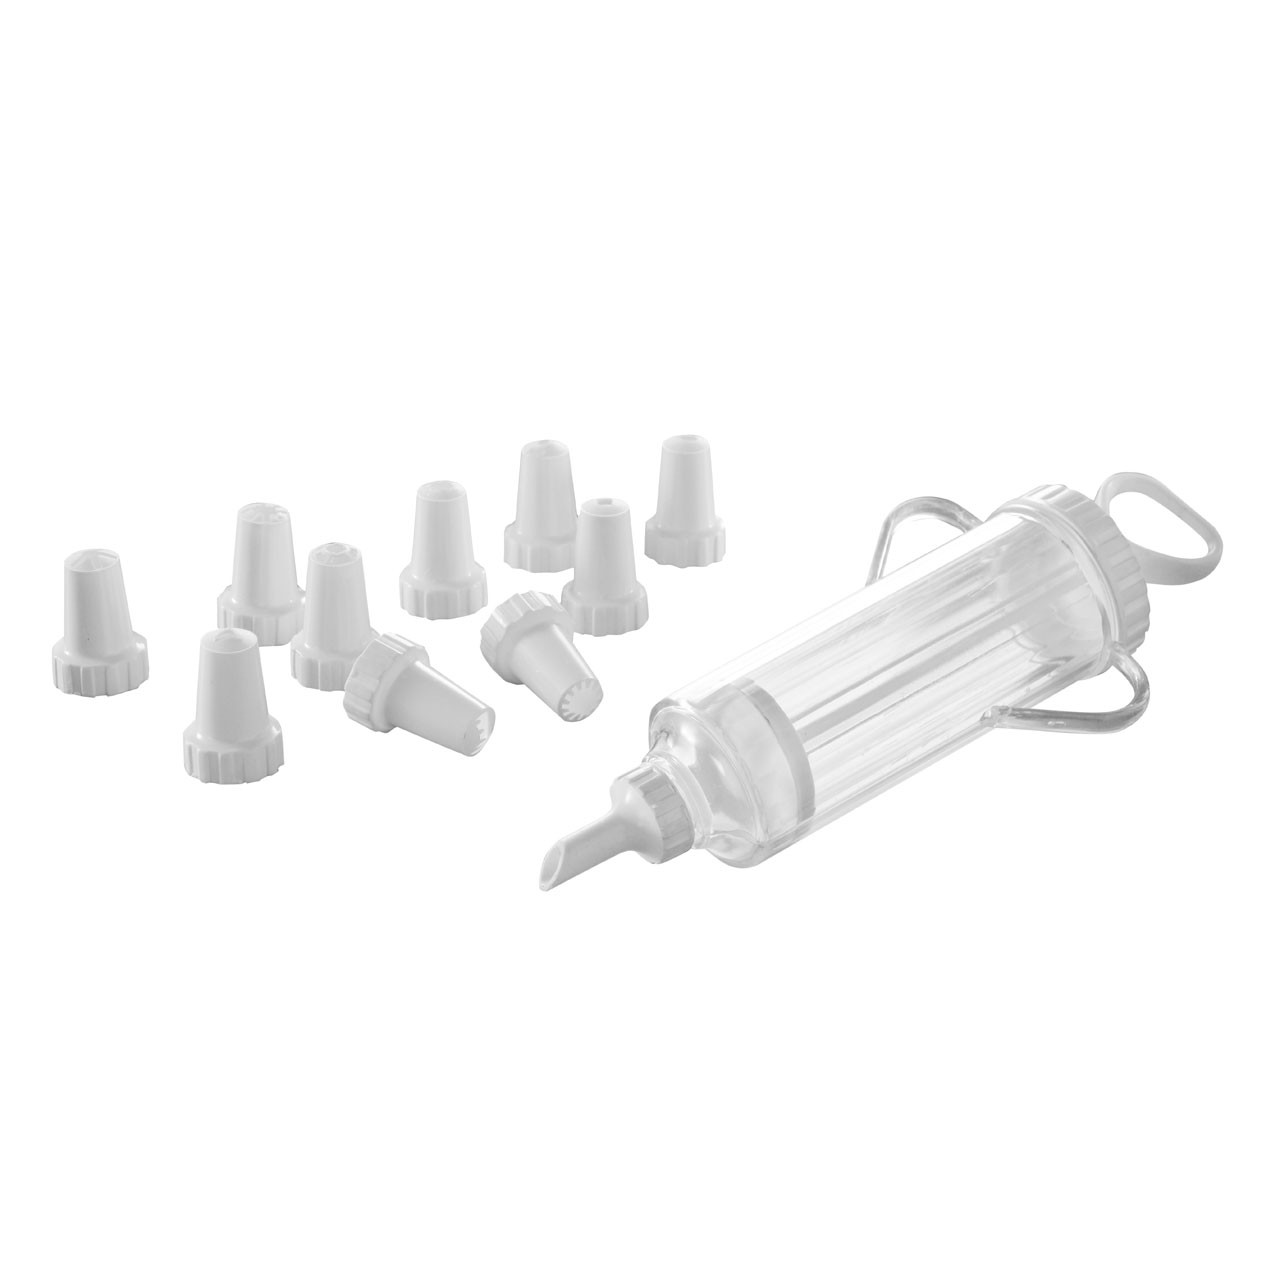 12 piece Cake Decorating Set - White